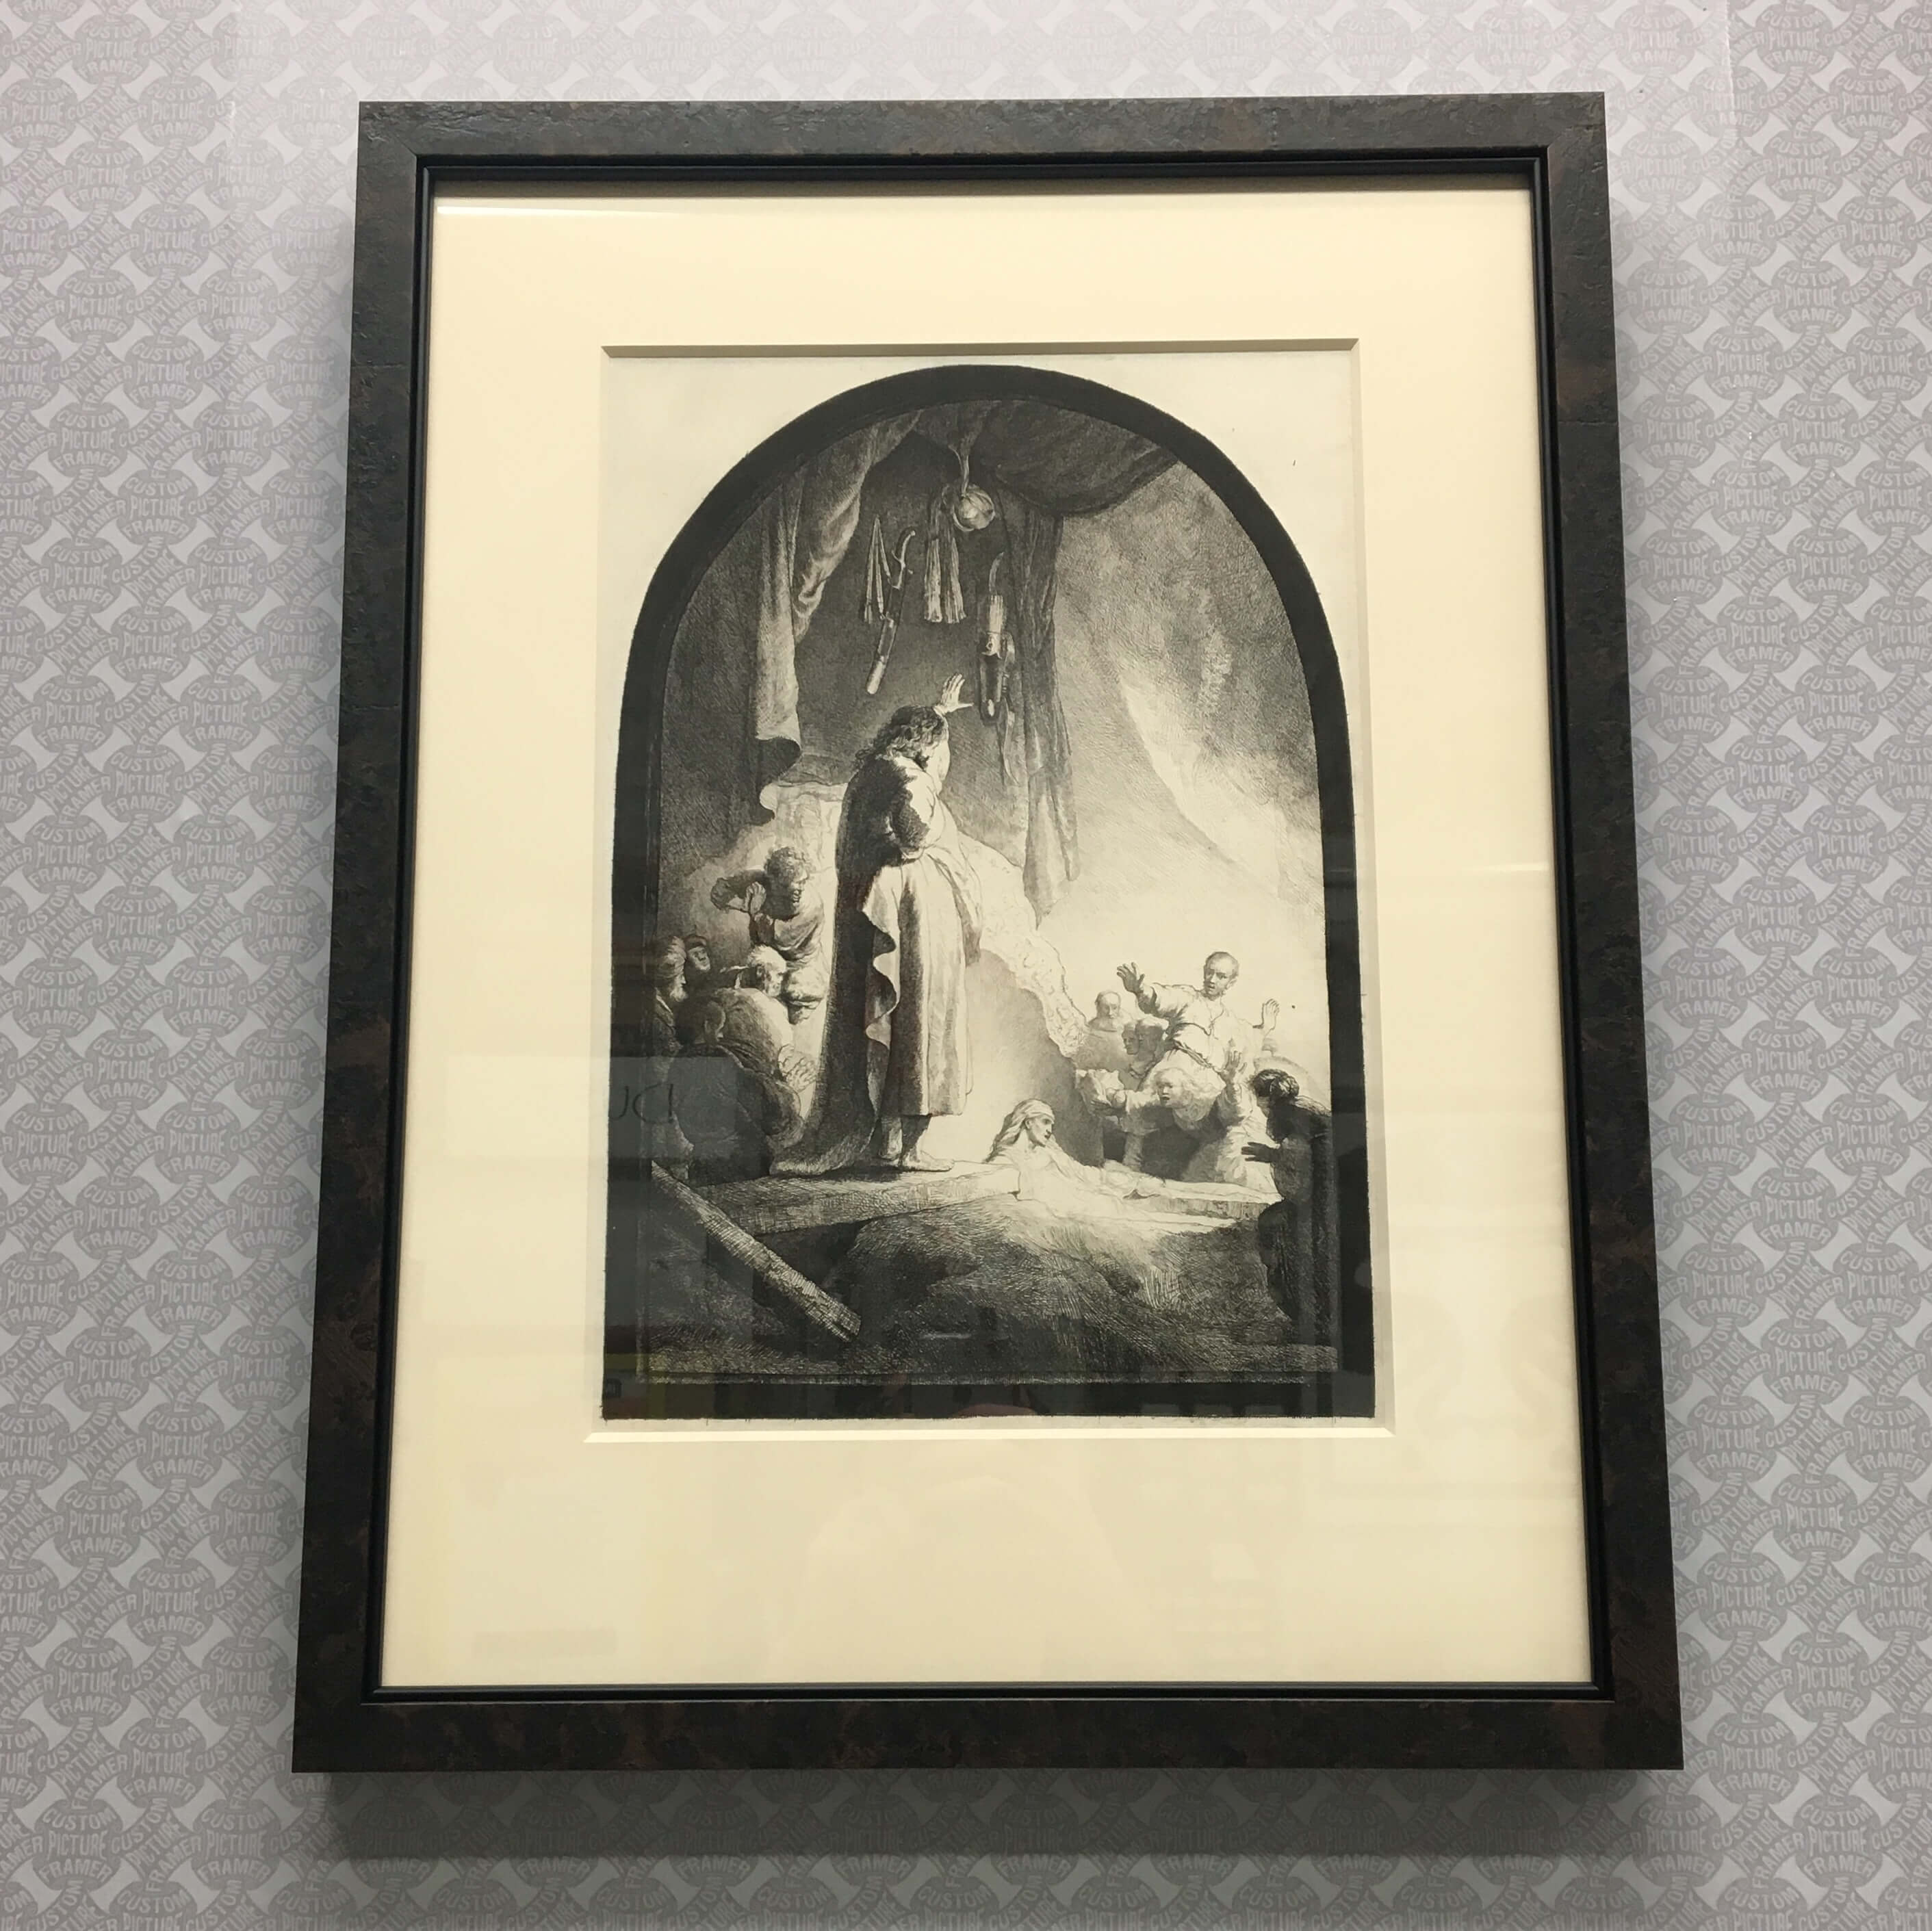 """""""The Resurrection of Lazarus"""" is a 19th century etching by Amand-Durand (after Rembrandt) - with 8 ply mat and custom framed in a Roma dark burl moulding with fillet enhancer. See more custom framing options at our Keswick Village showroom located just north of Philadelphia in Glenside PA ( Pennsylvania ) , 19038 . Custom Picture Framer of Glenside carries several thousand frame styles, prints, maps, limited editions, mirrors, and more!"""